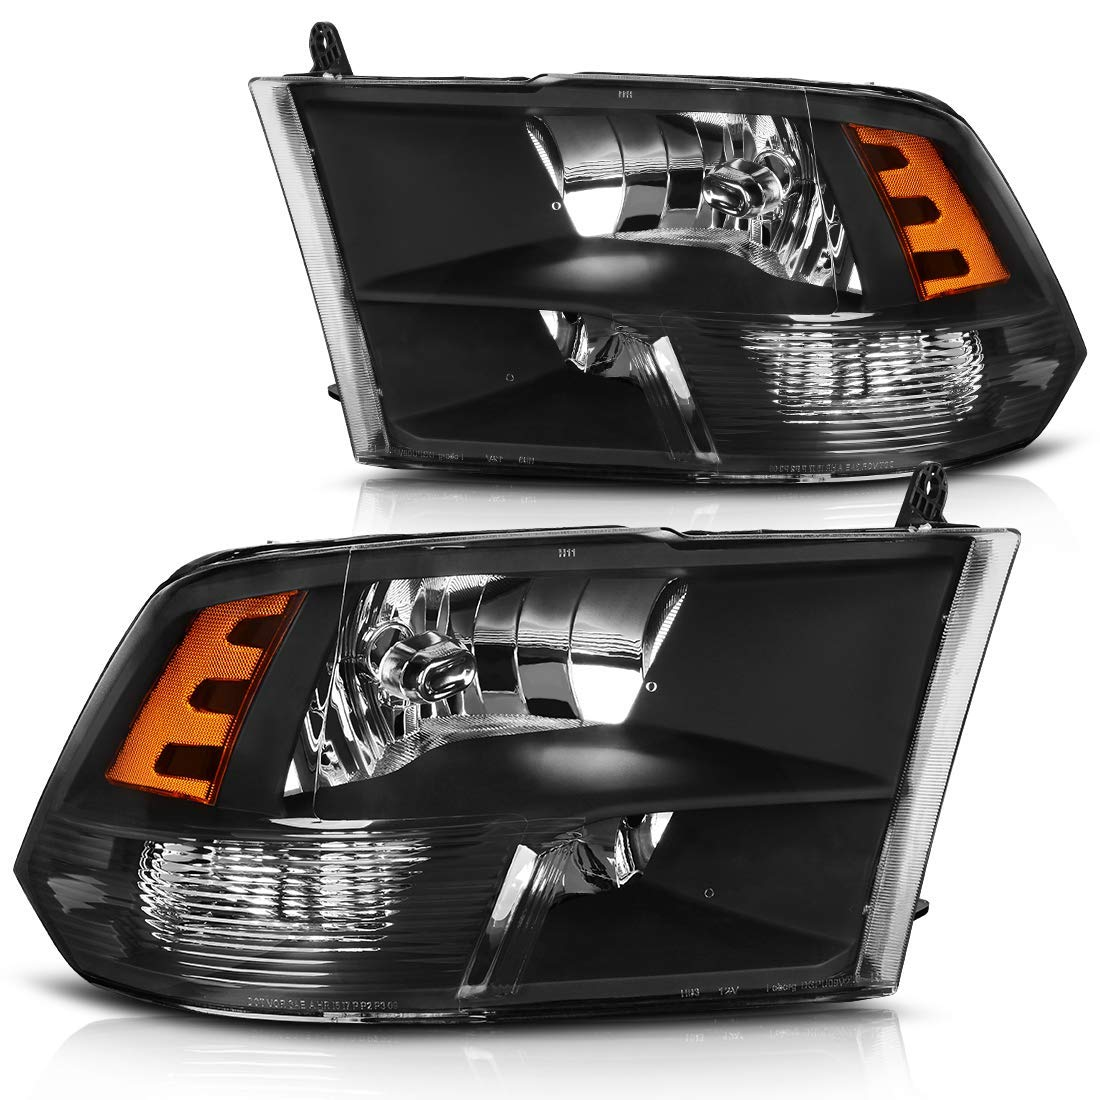 Passenger And Driver Headlight Assembly For 2009 2018 Dodge Ram 1500 2500 3500 Pickup Headlamp Replacement Black Housing Amber Reflector One Year Warranty Walmart Com Walmart Com